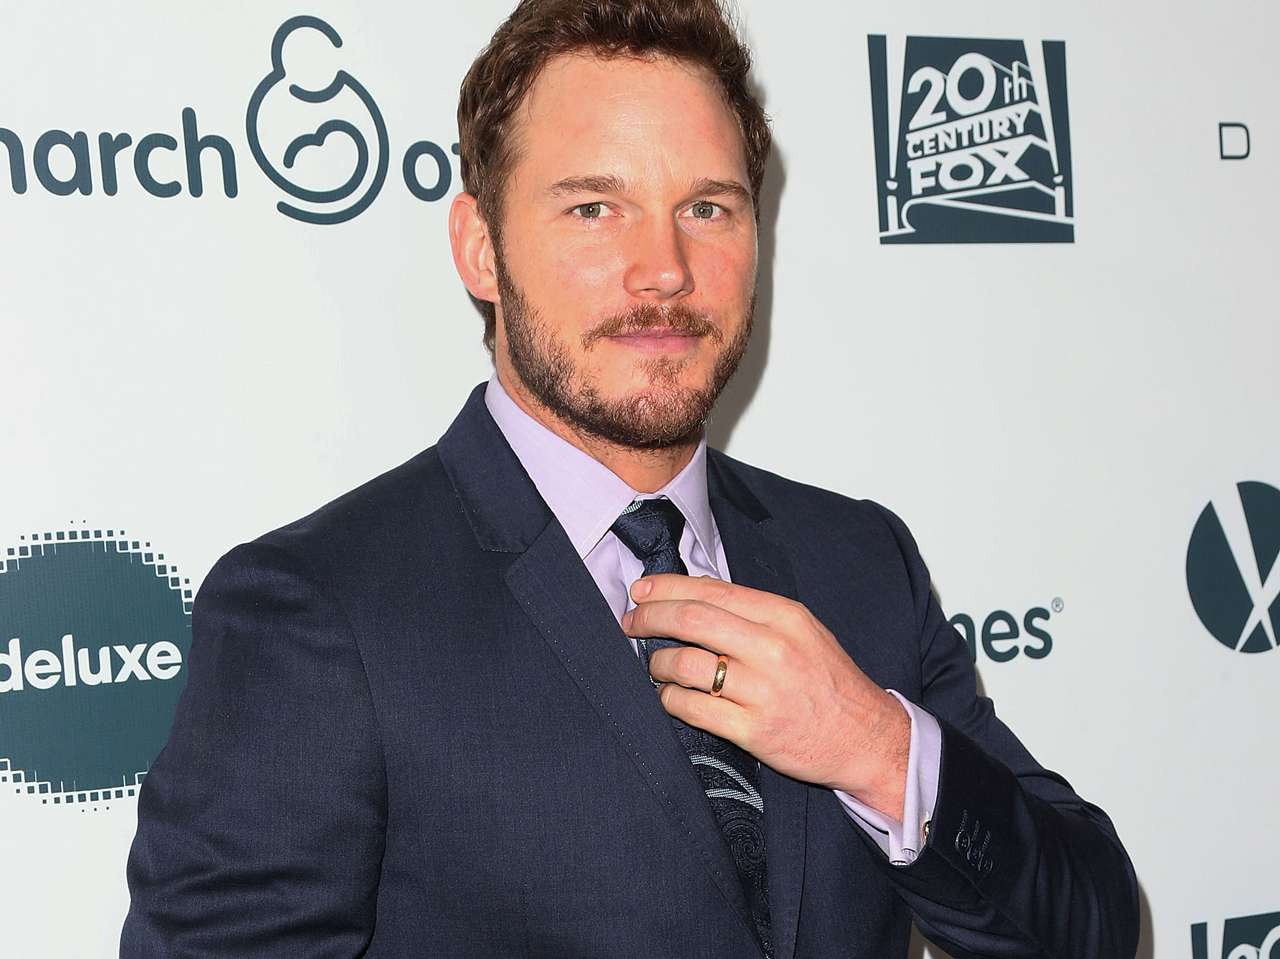 Los 10 famosos más taquilleros de Hollywood en 2014: Chris Pratt Foto: Getty Images